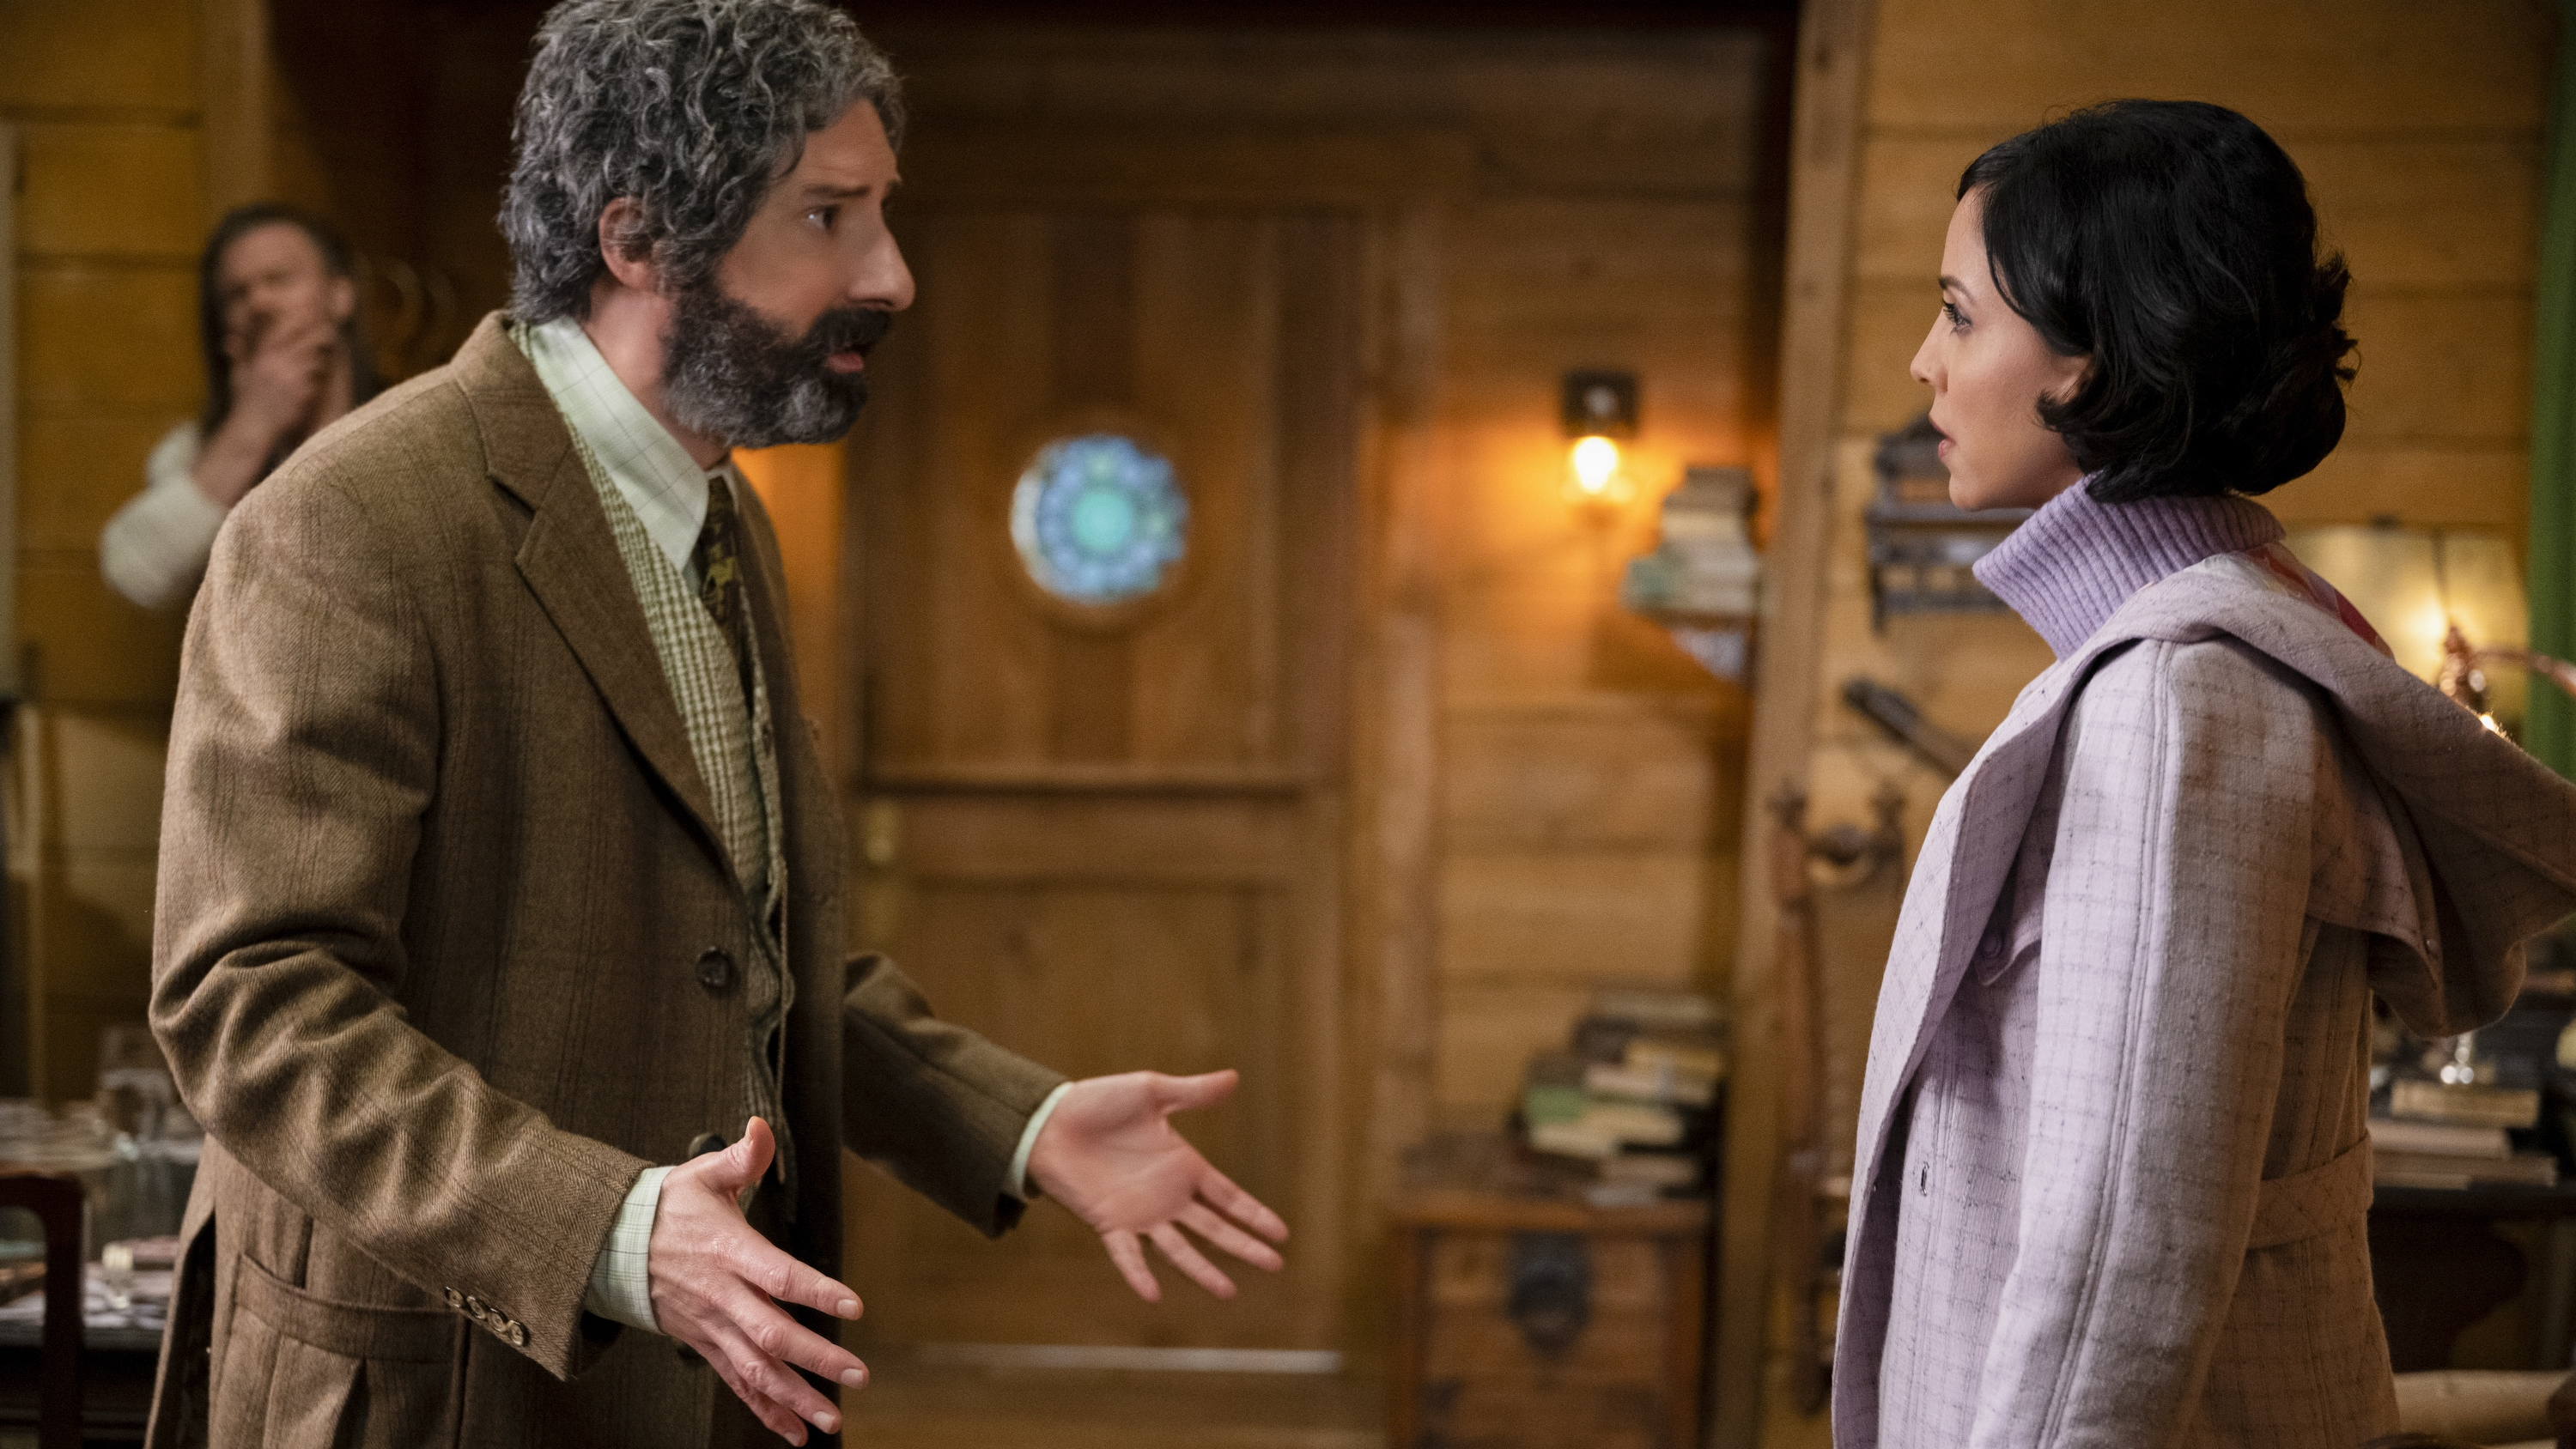 """MYSTERIOUS BENEDICT SOCIETY - """"The Art Of Conveyance & Round-Trippery"""" (Disney/Diyah Pera) TONY HALE, GIA SANDHU"""